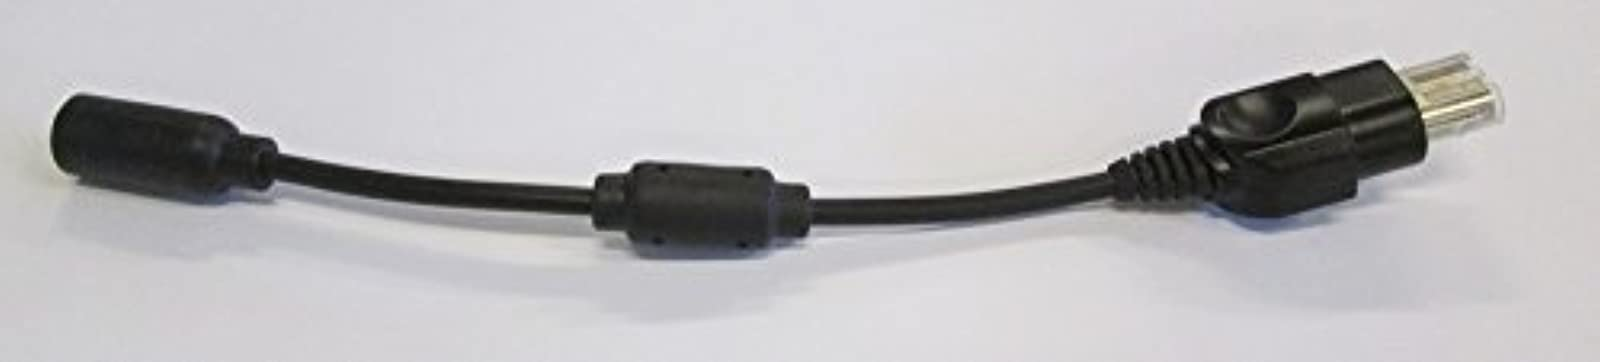 Controller Breakaway Cable For Microsoft Xbox Original By Mars Devices